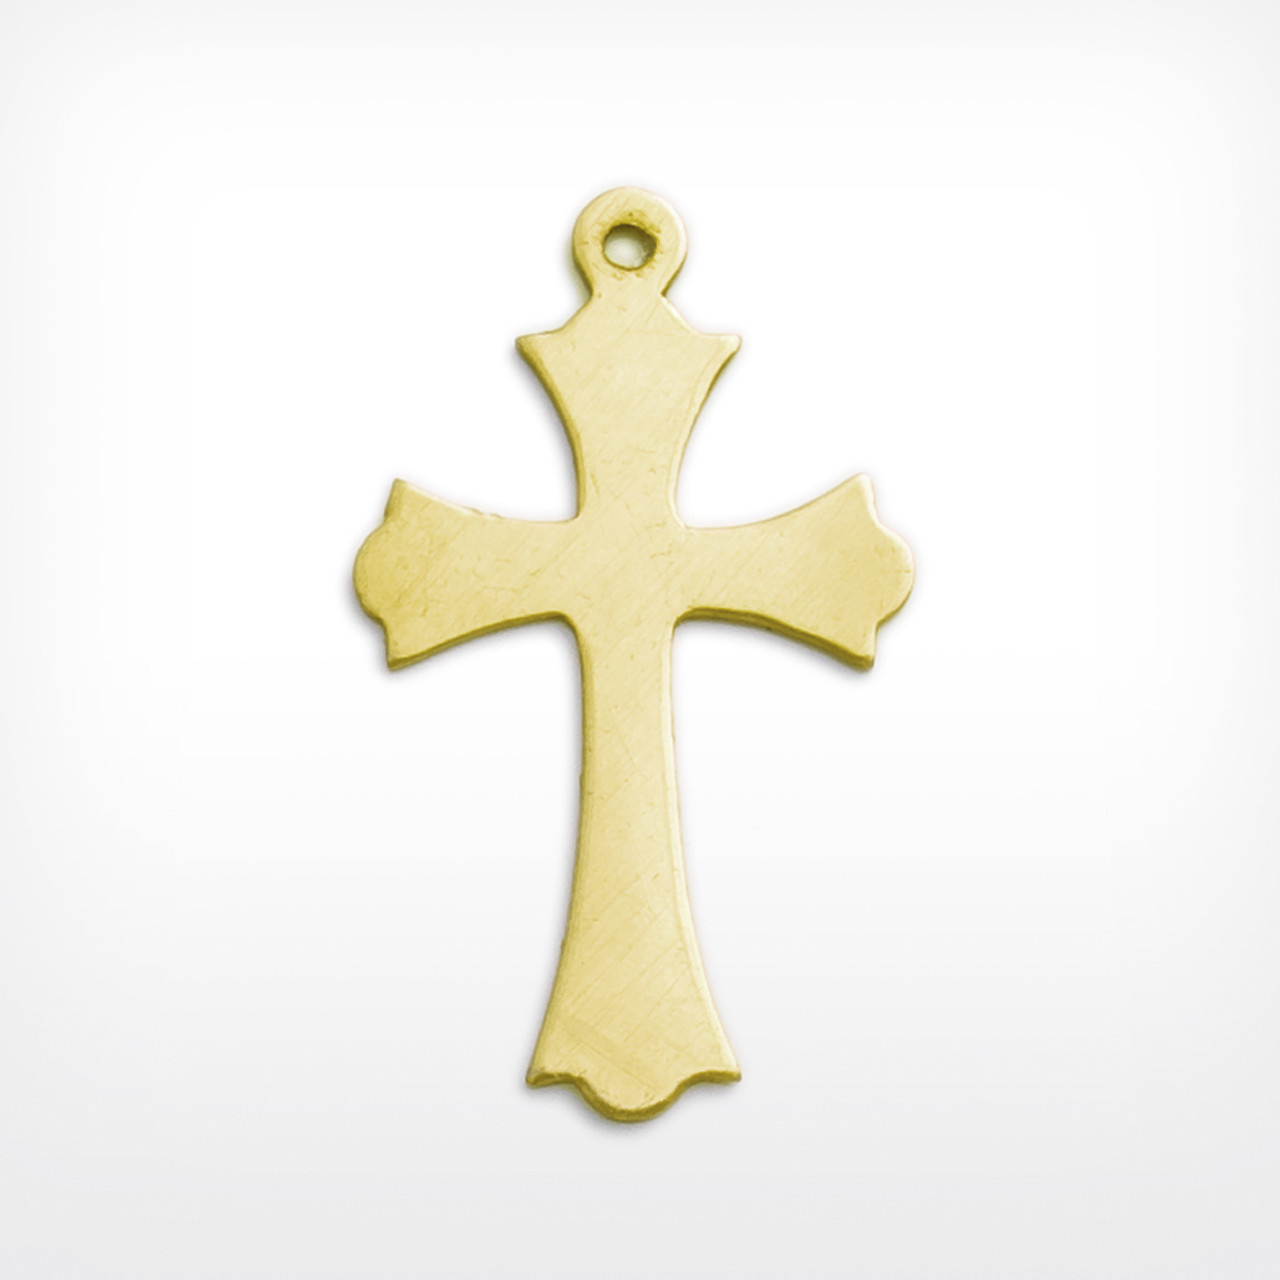 Brass cross for craft jewellery making